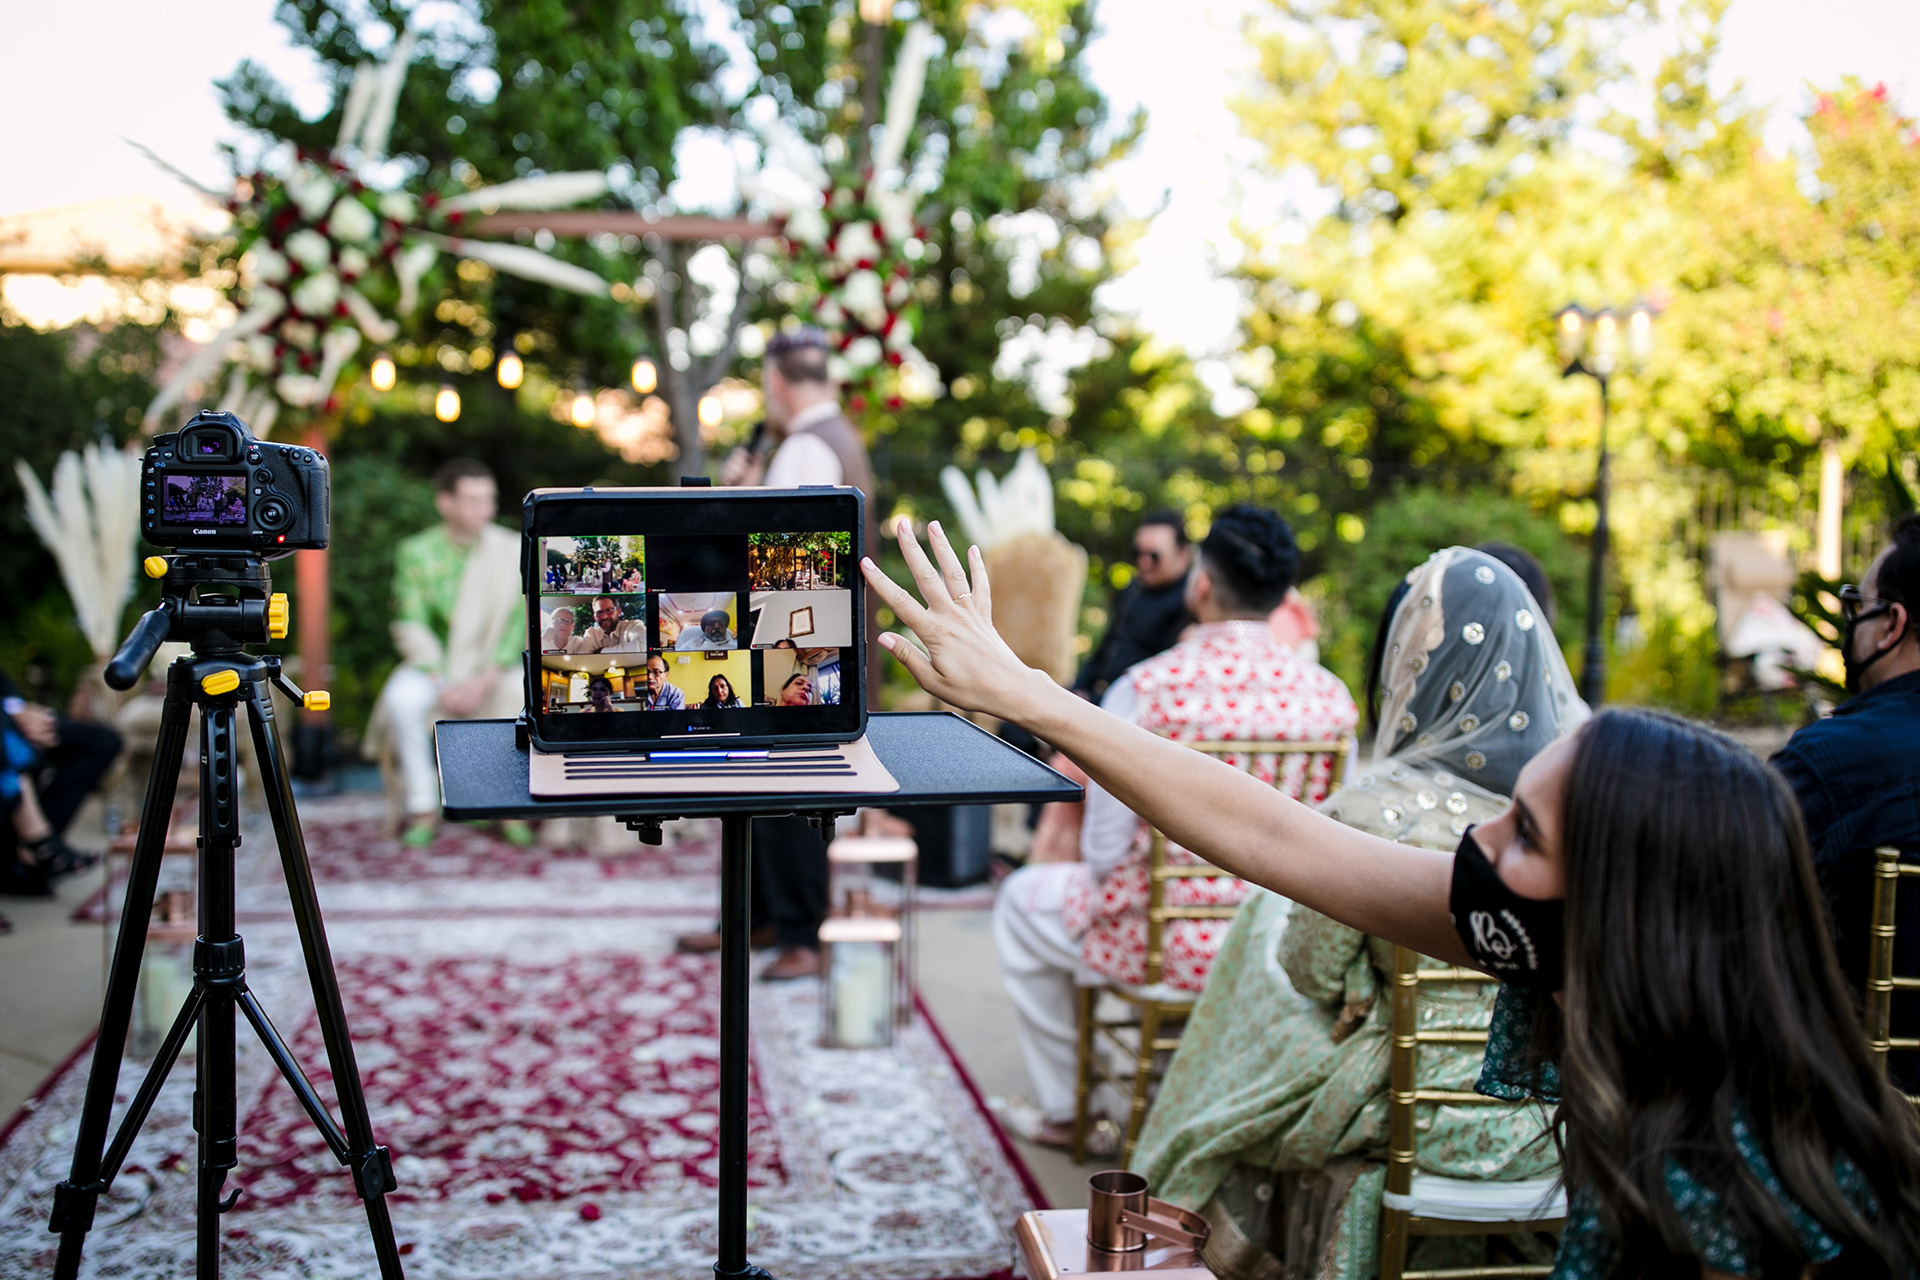 Pleasanton, CA Outdoor Elopement Ceremony Zoom Picture | While only a few guests were able to attend in person, one guest monitored an iPad during the ceremony